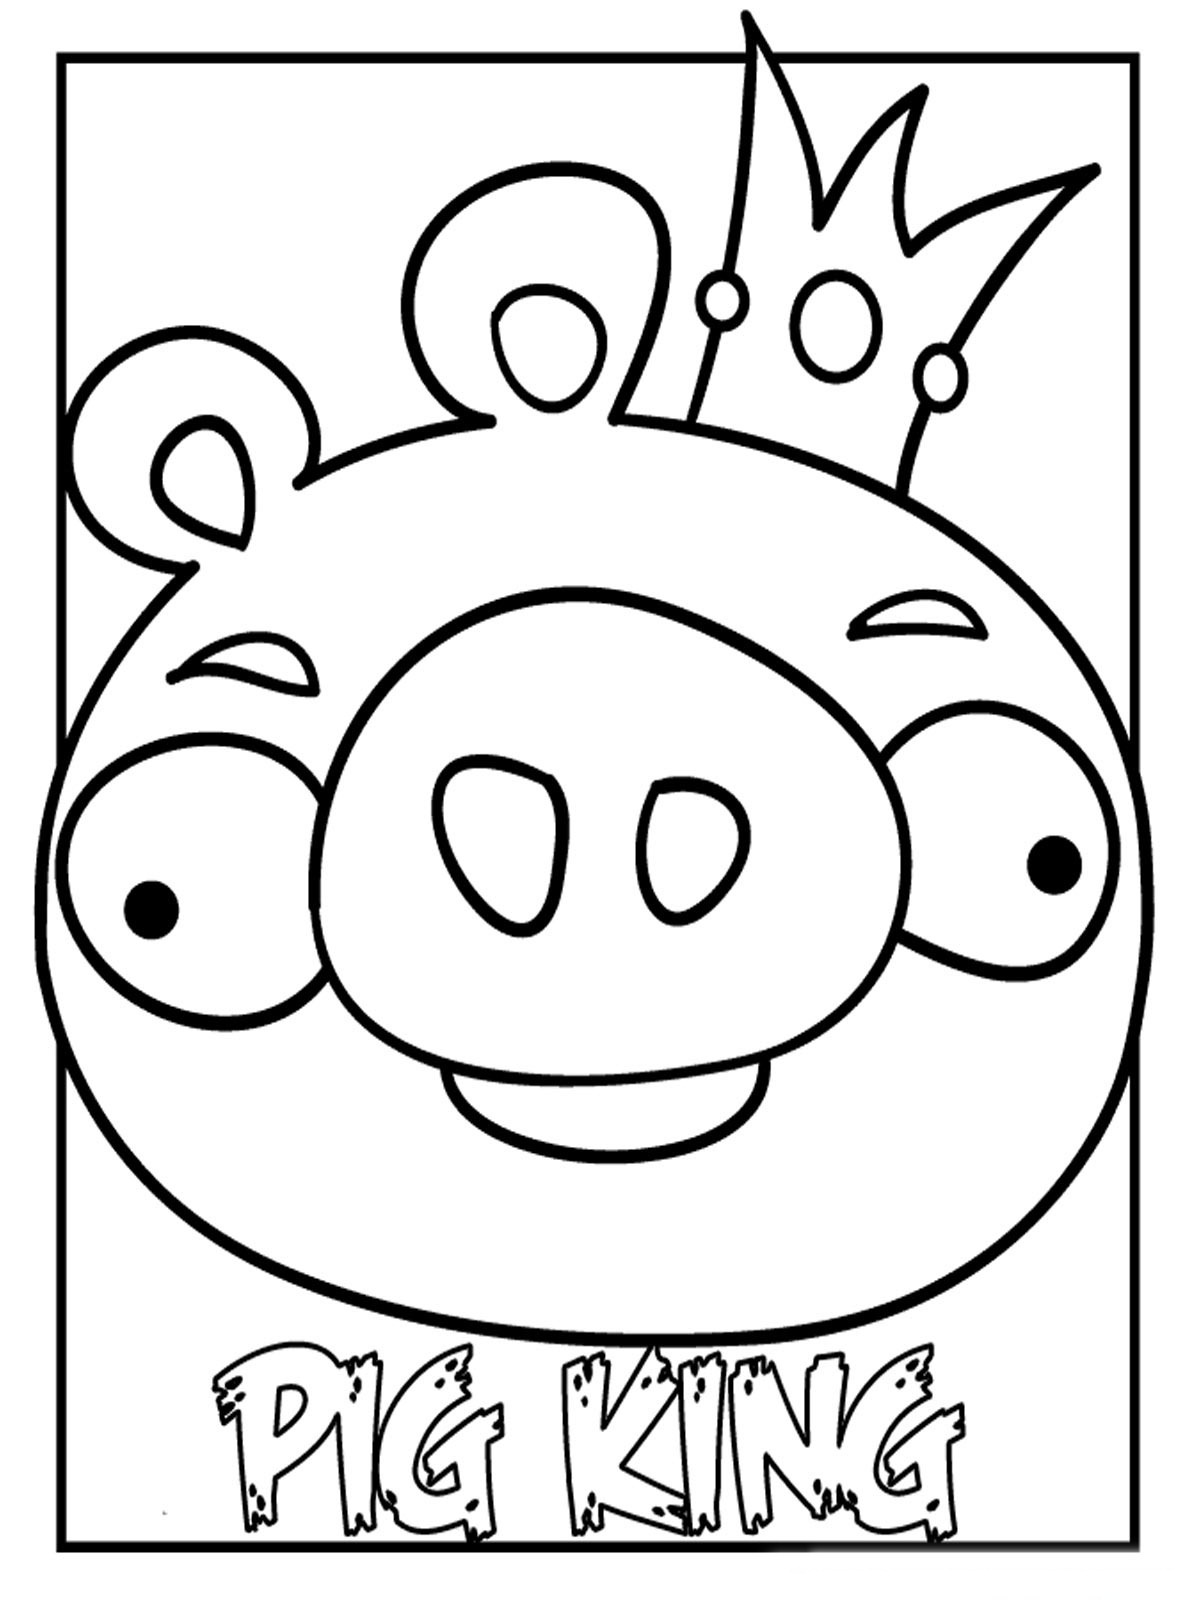 coloring pages for angry birds angry birds rio coloring pages minister coloring birds for pages angry coloring